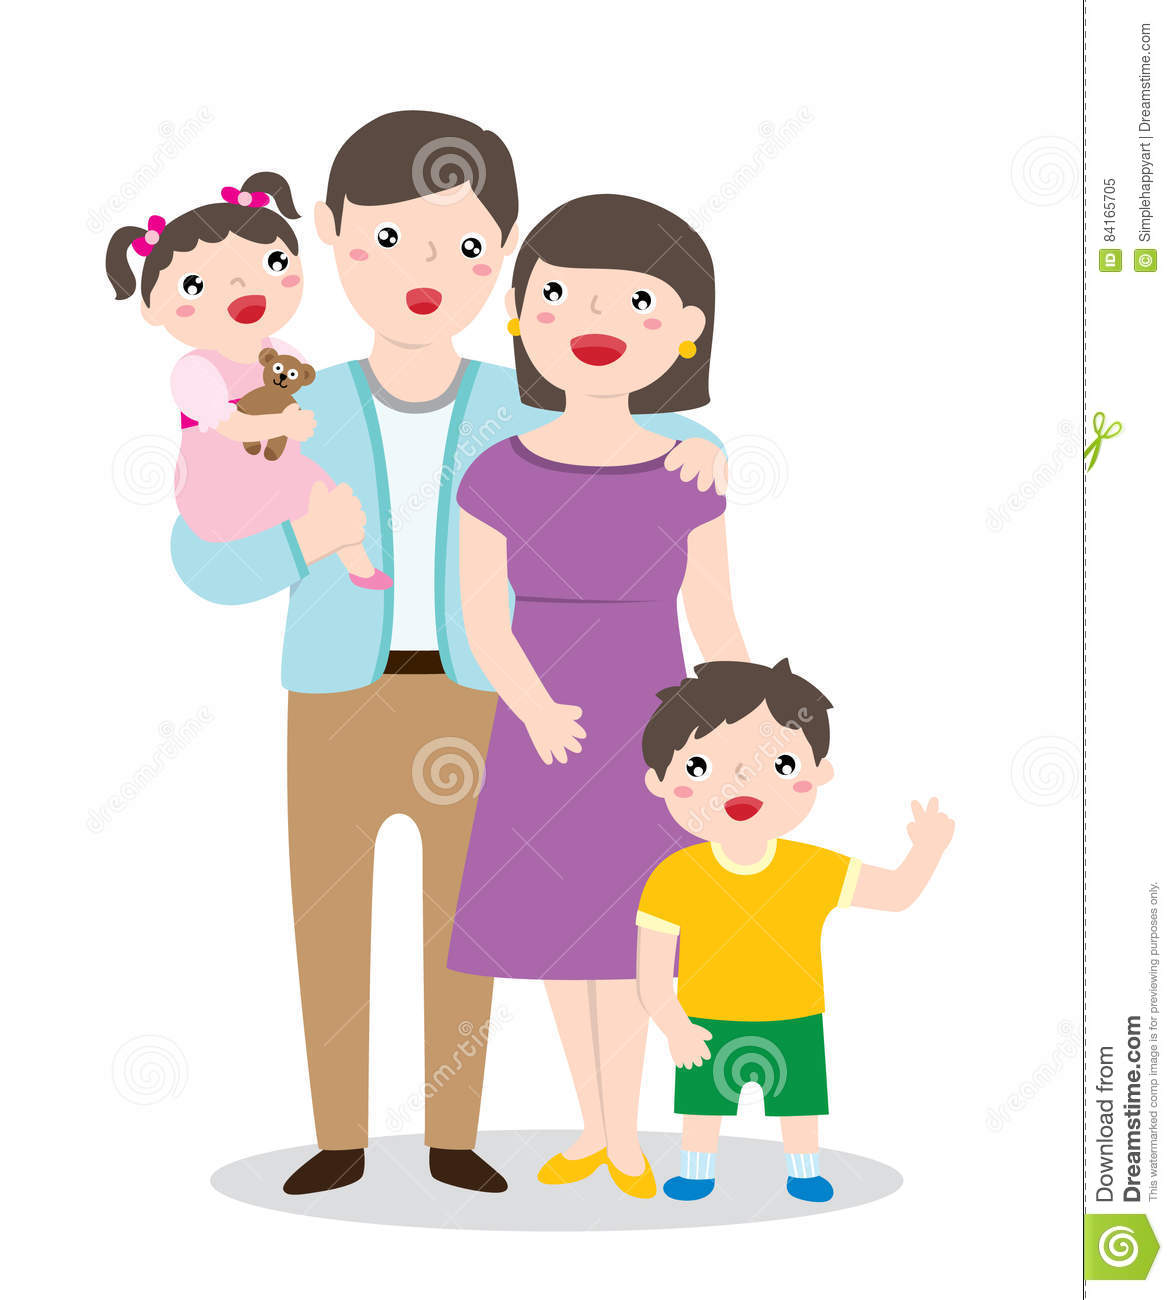 Drawing Of A Happy Family Portrait Stock Vector Illustration Of